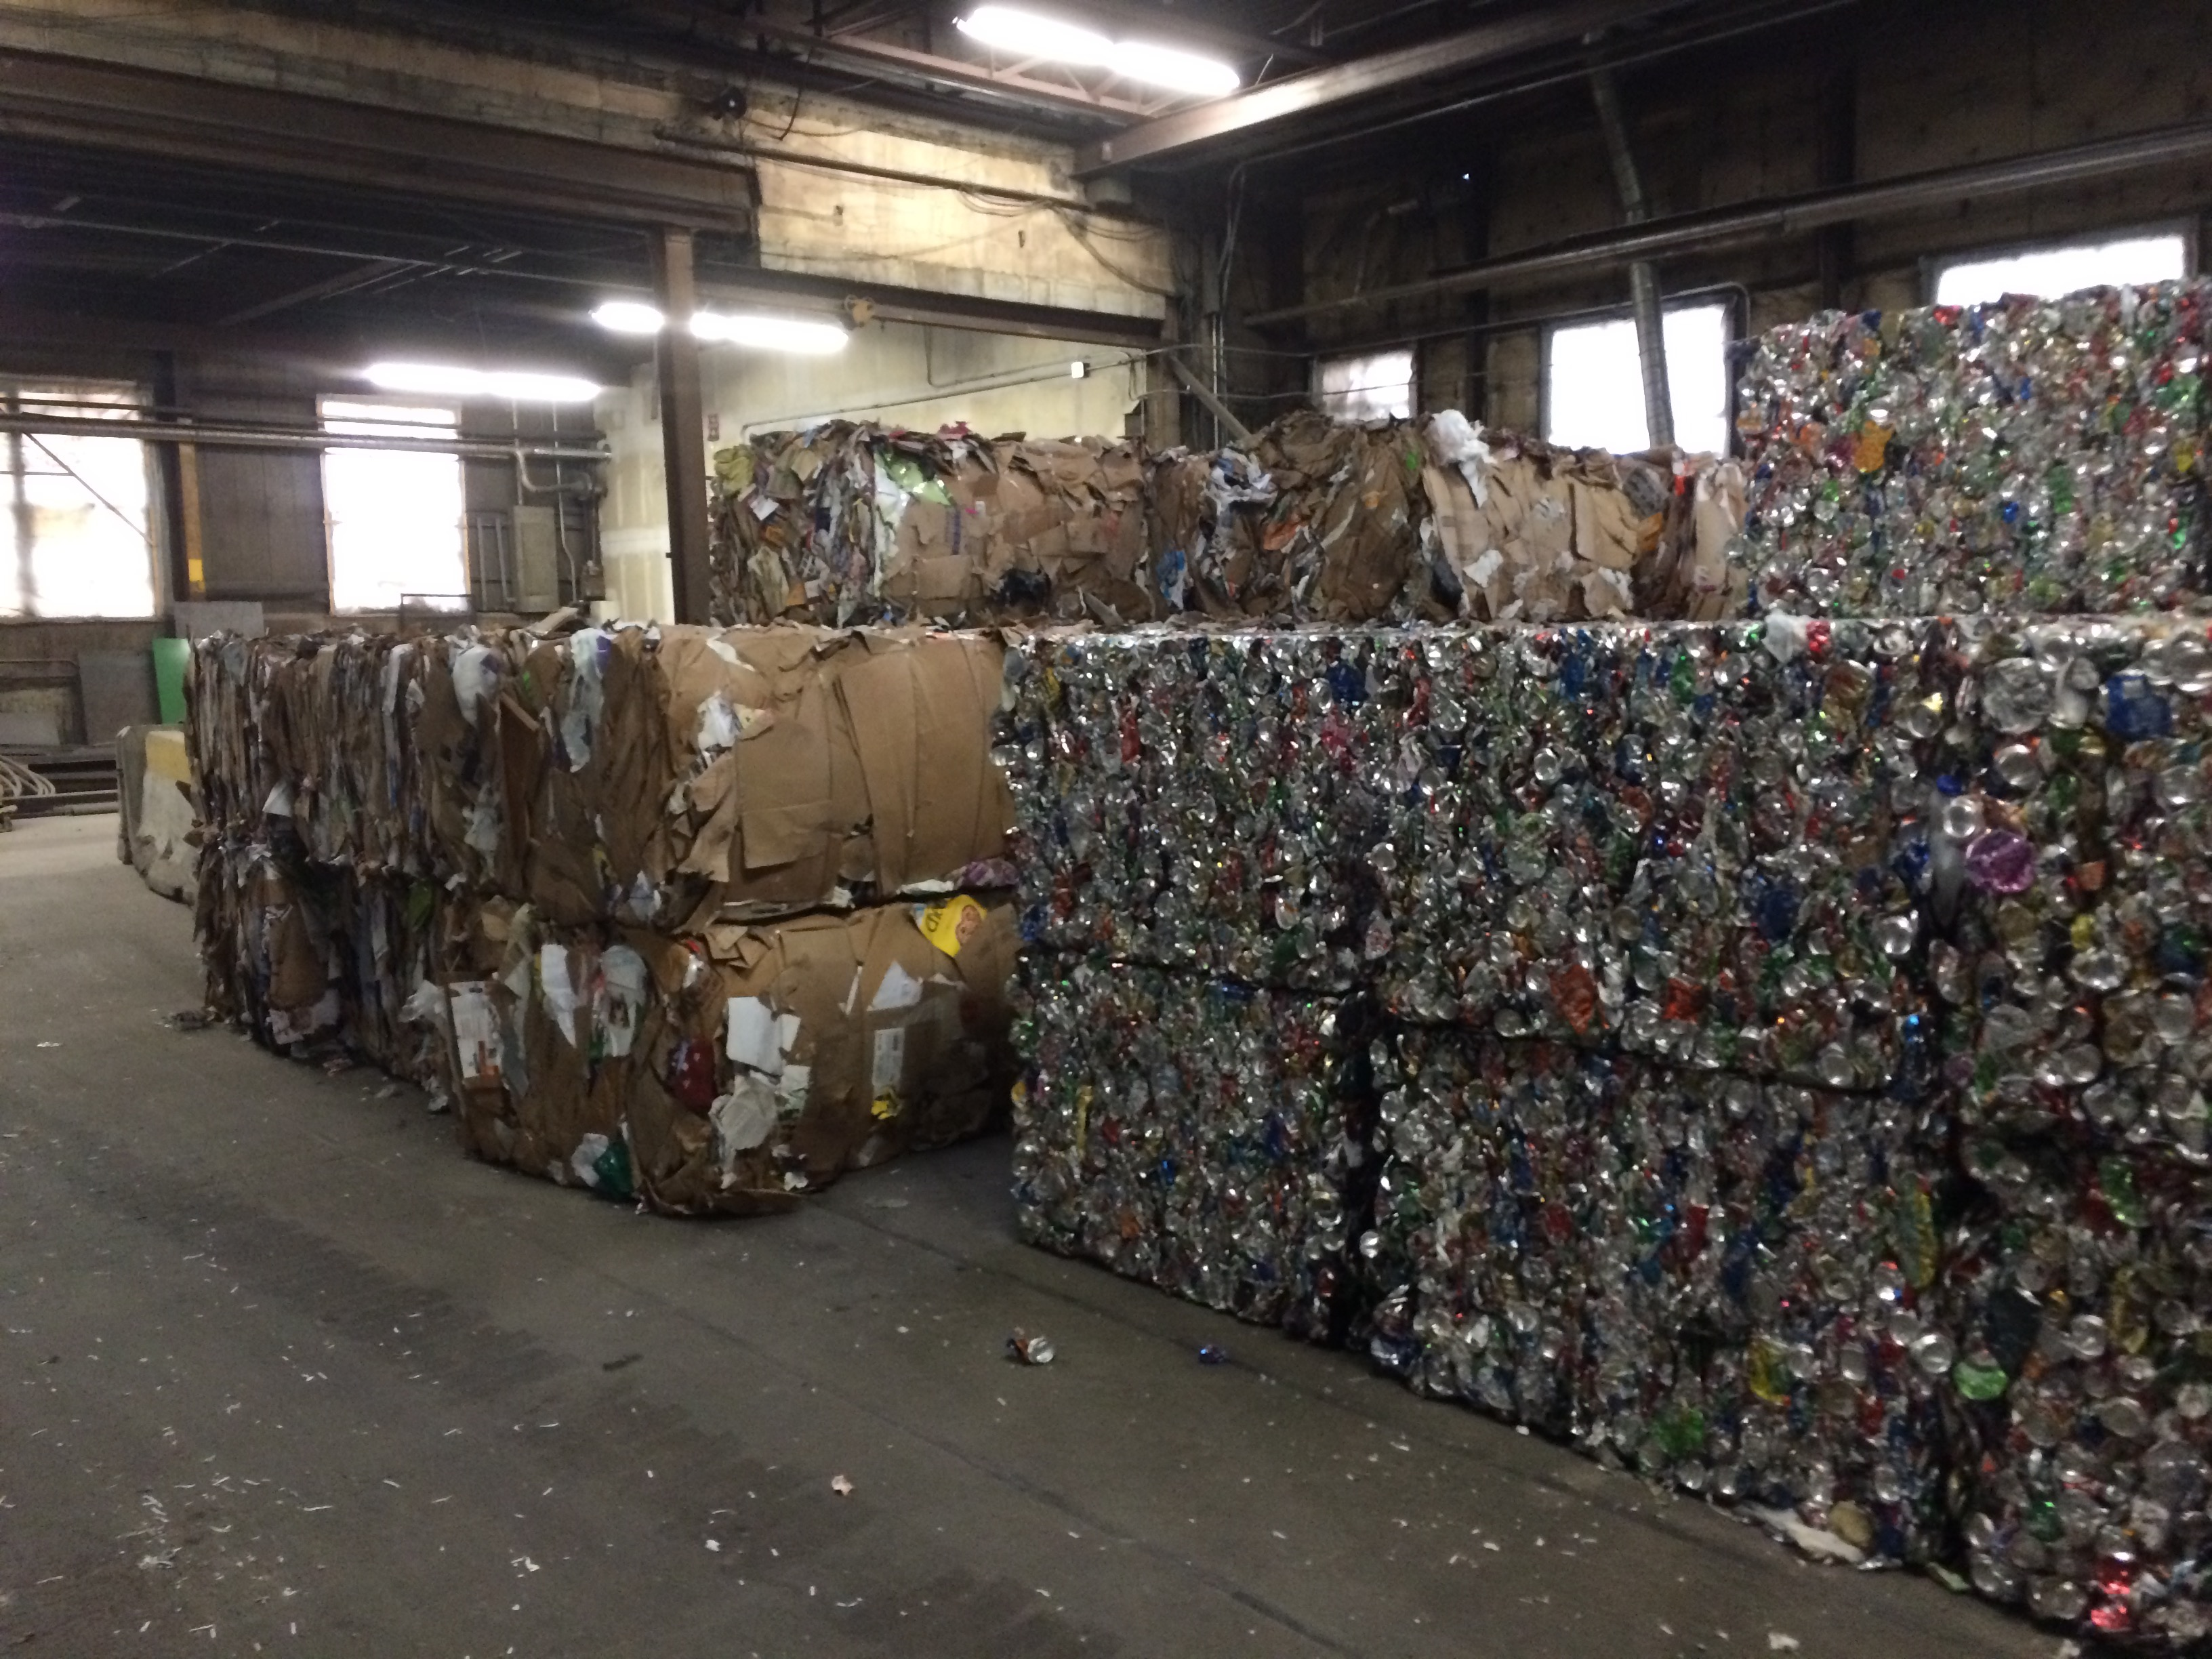 Recycling and the China connection